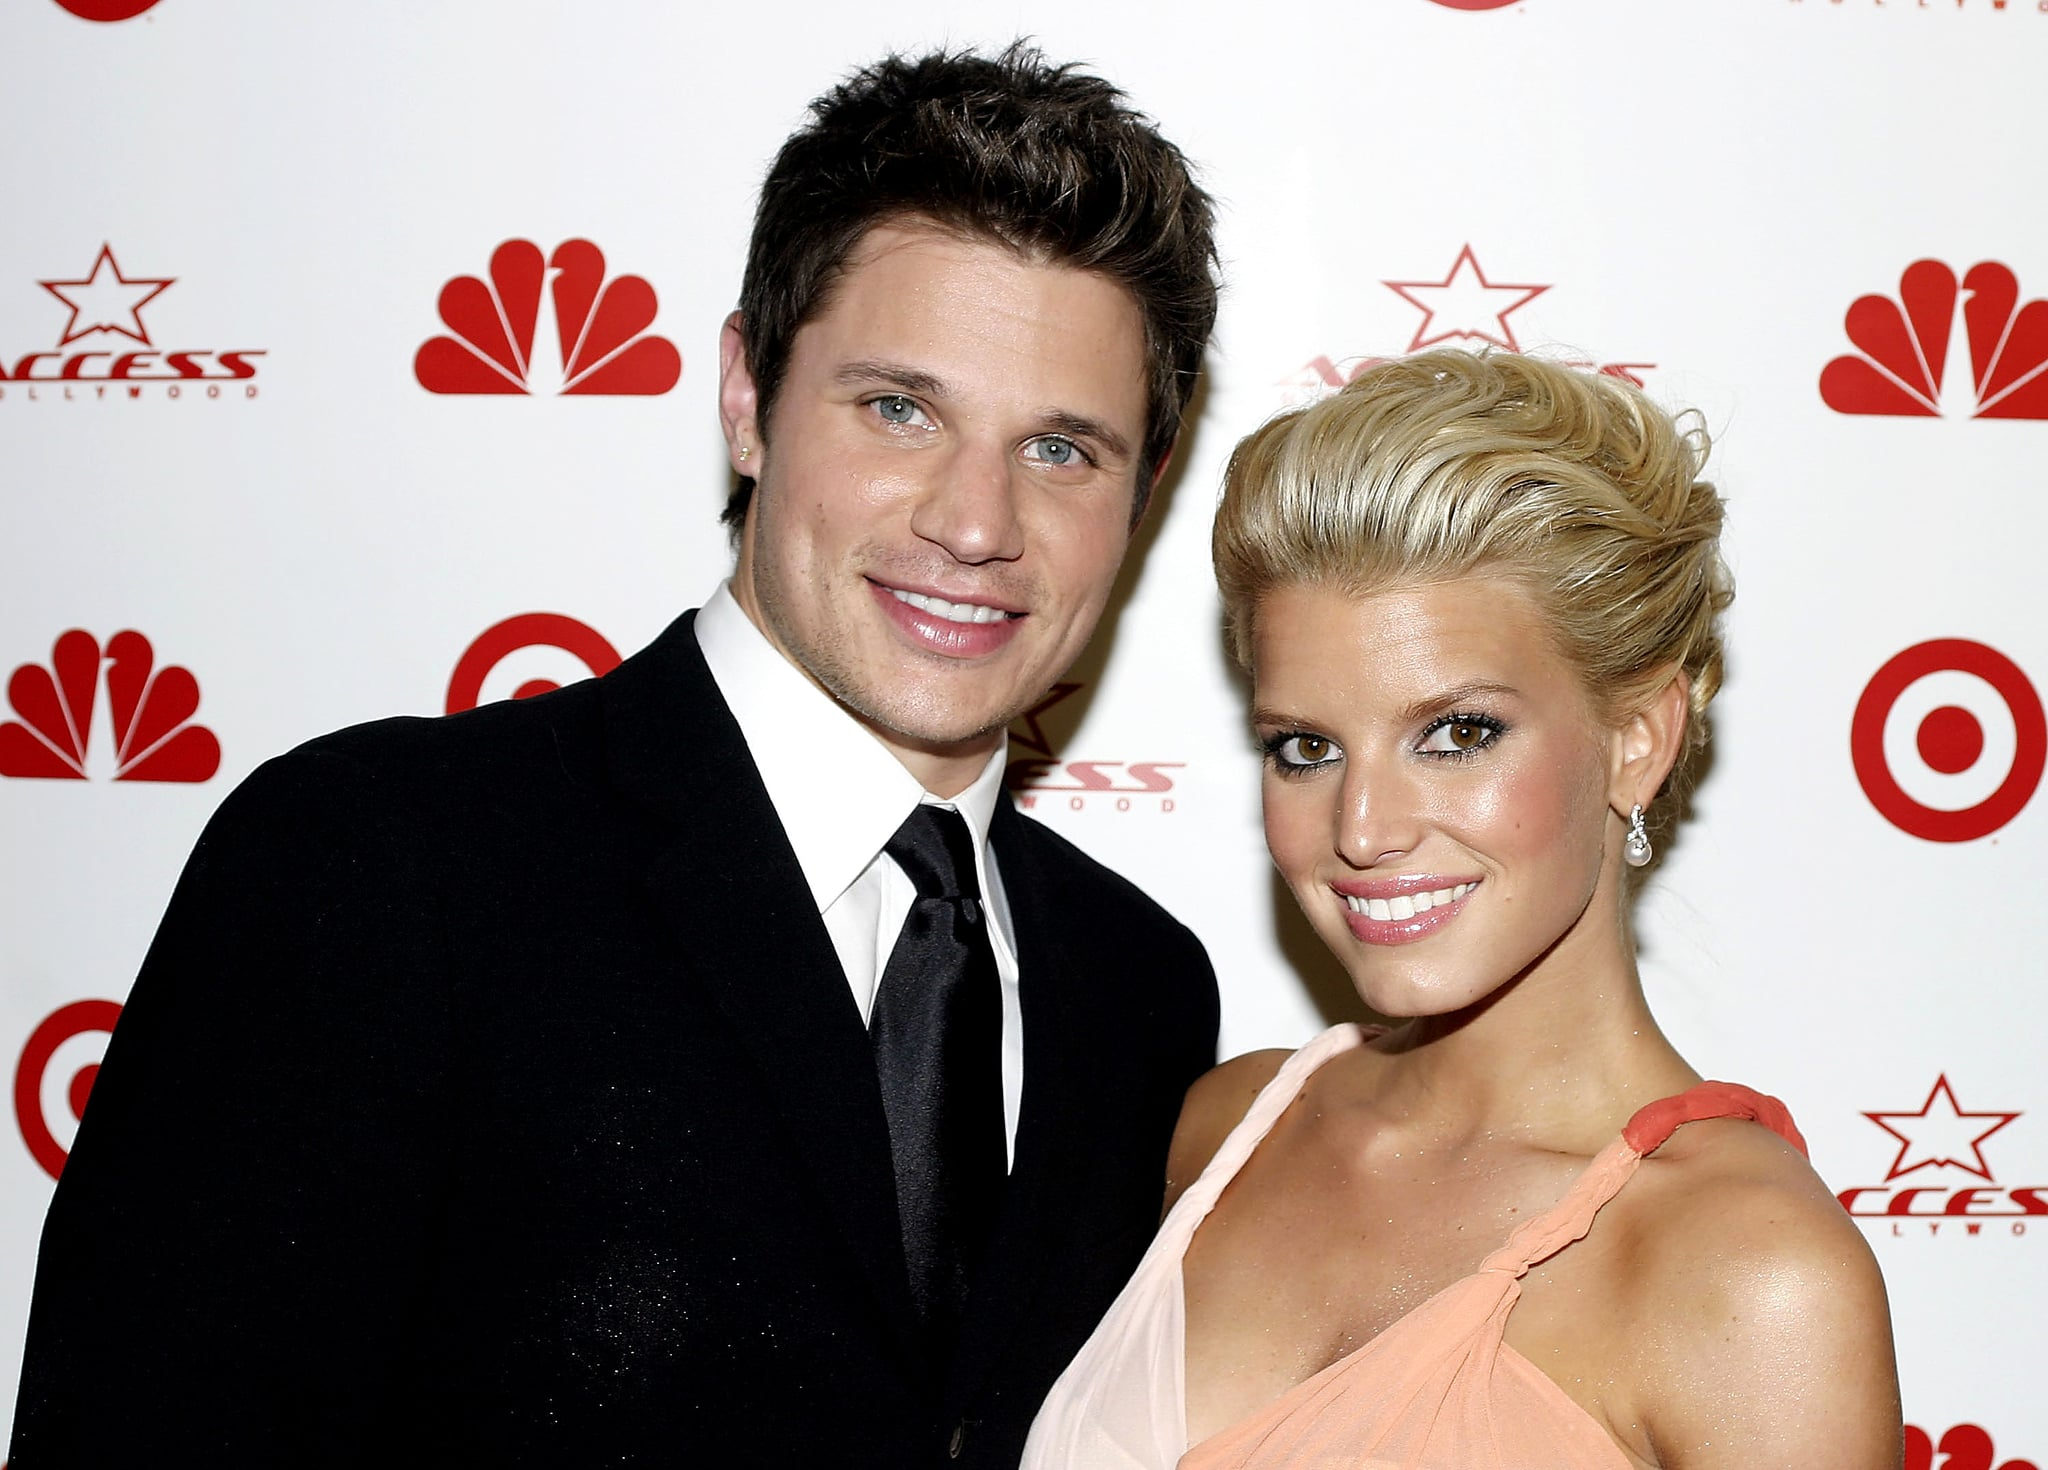 Jessica simpson and nick lachey sex video